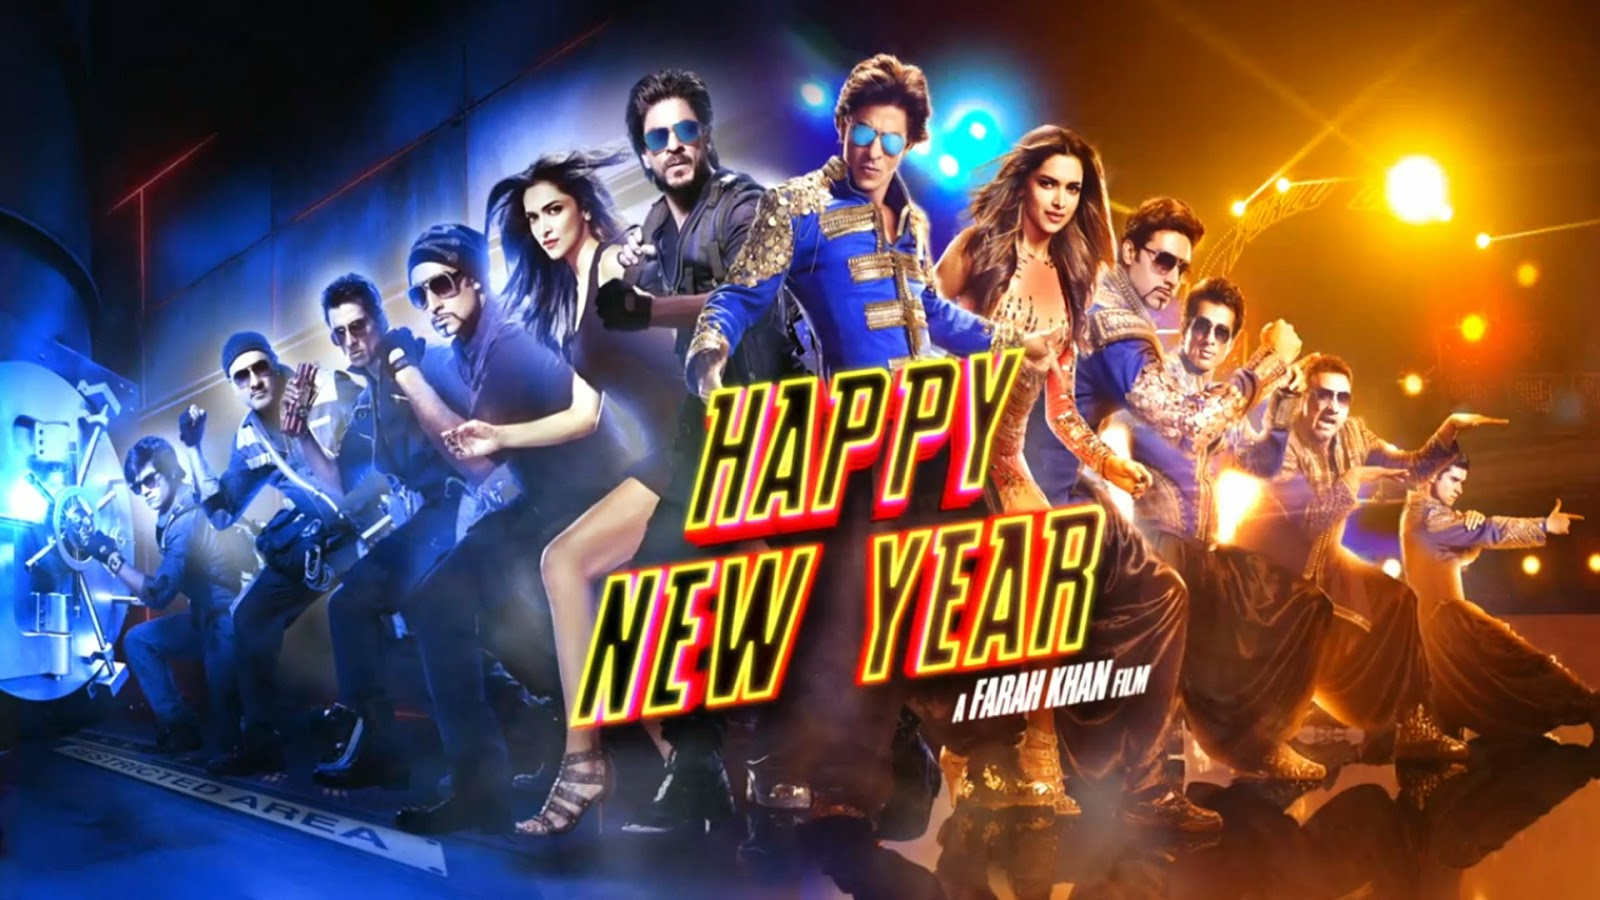 Happy new year full movie hd